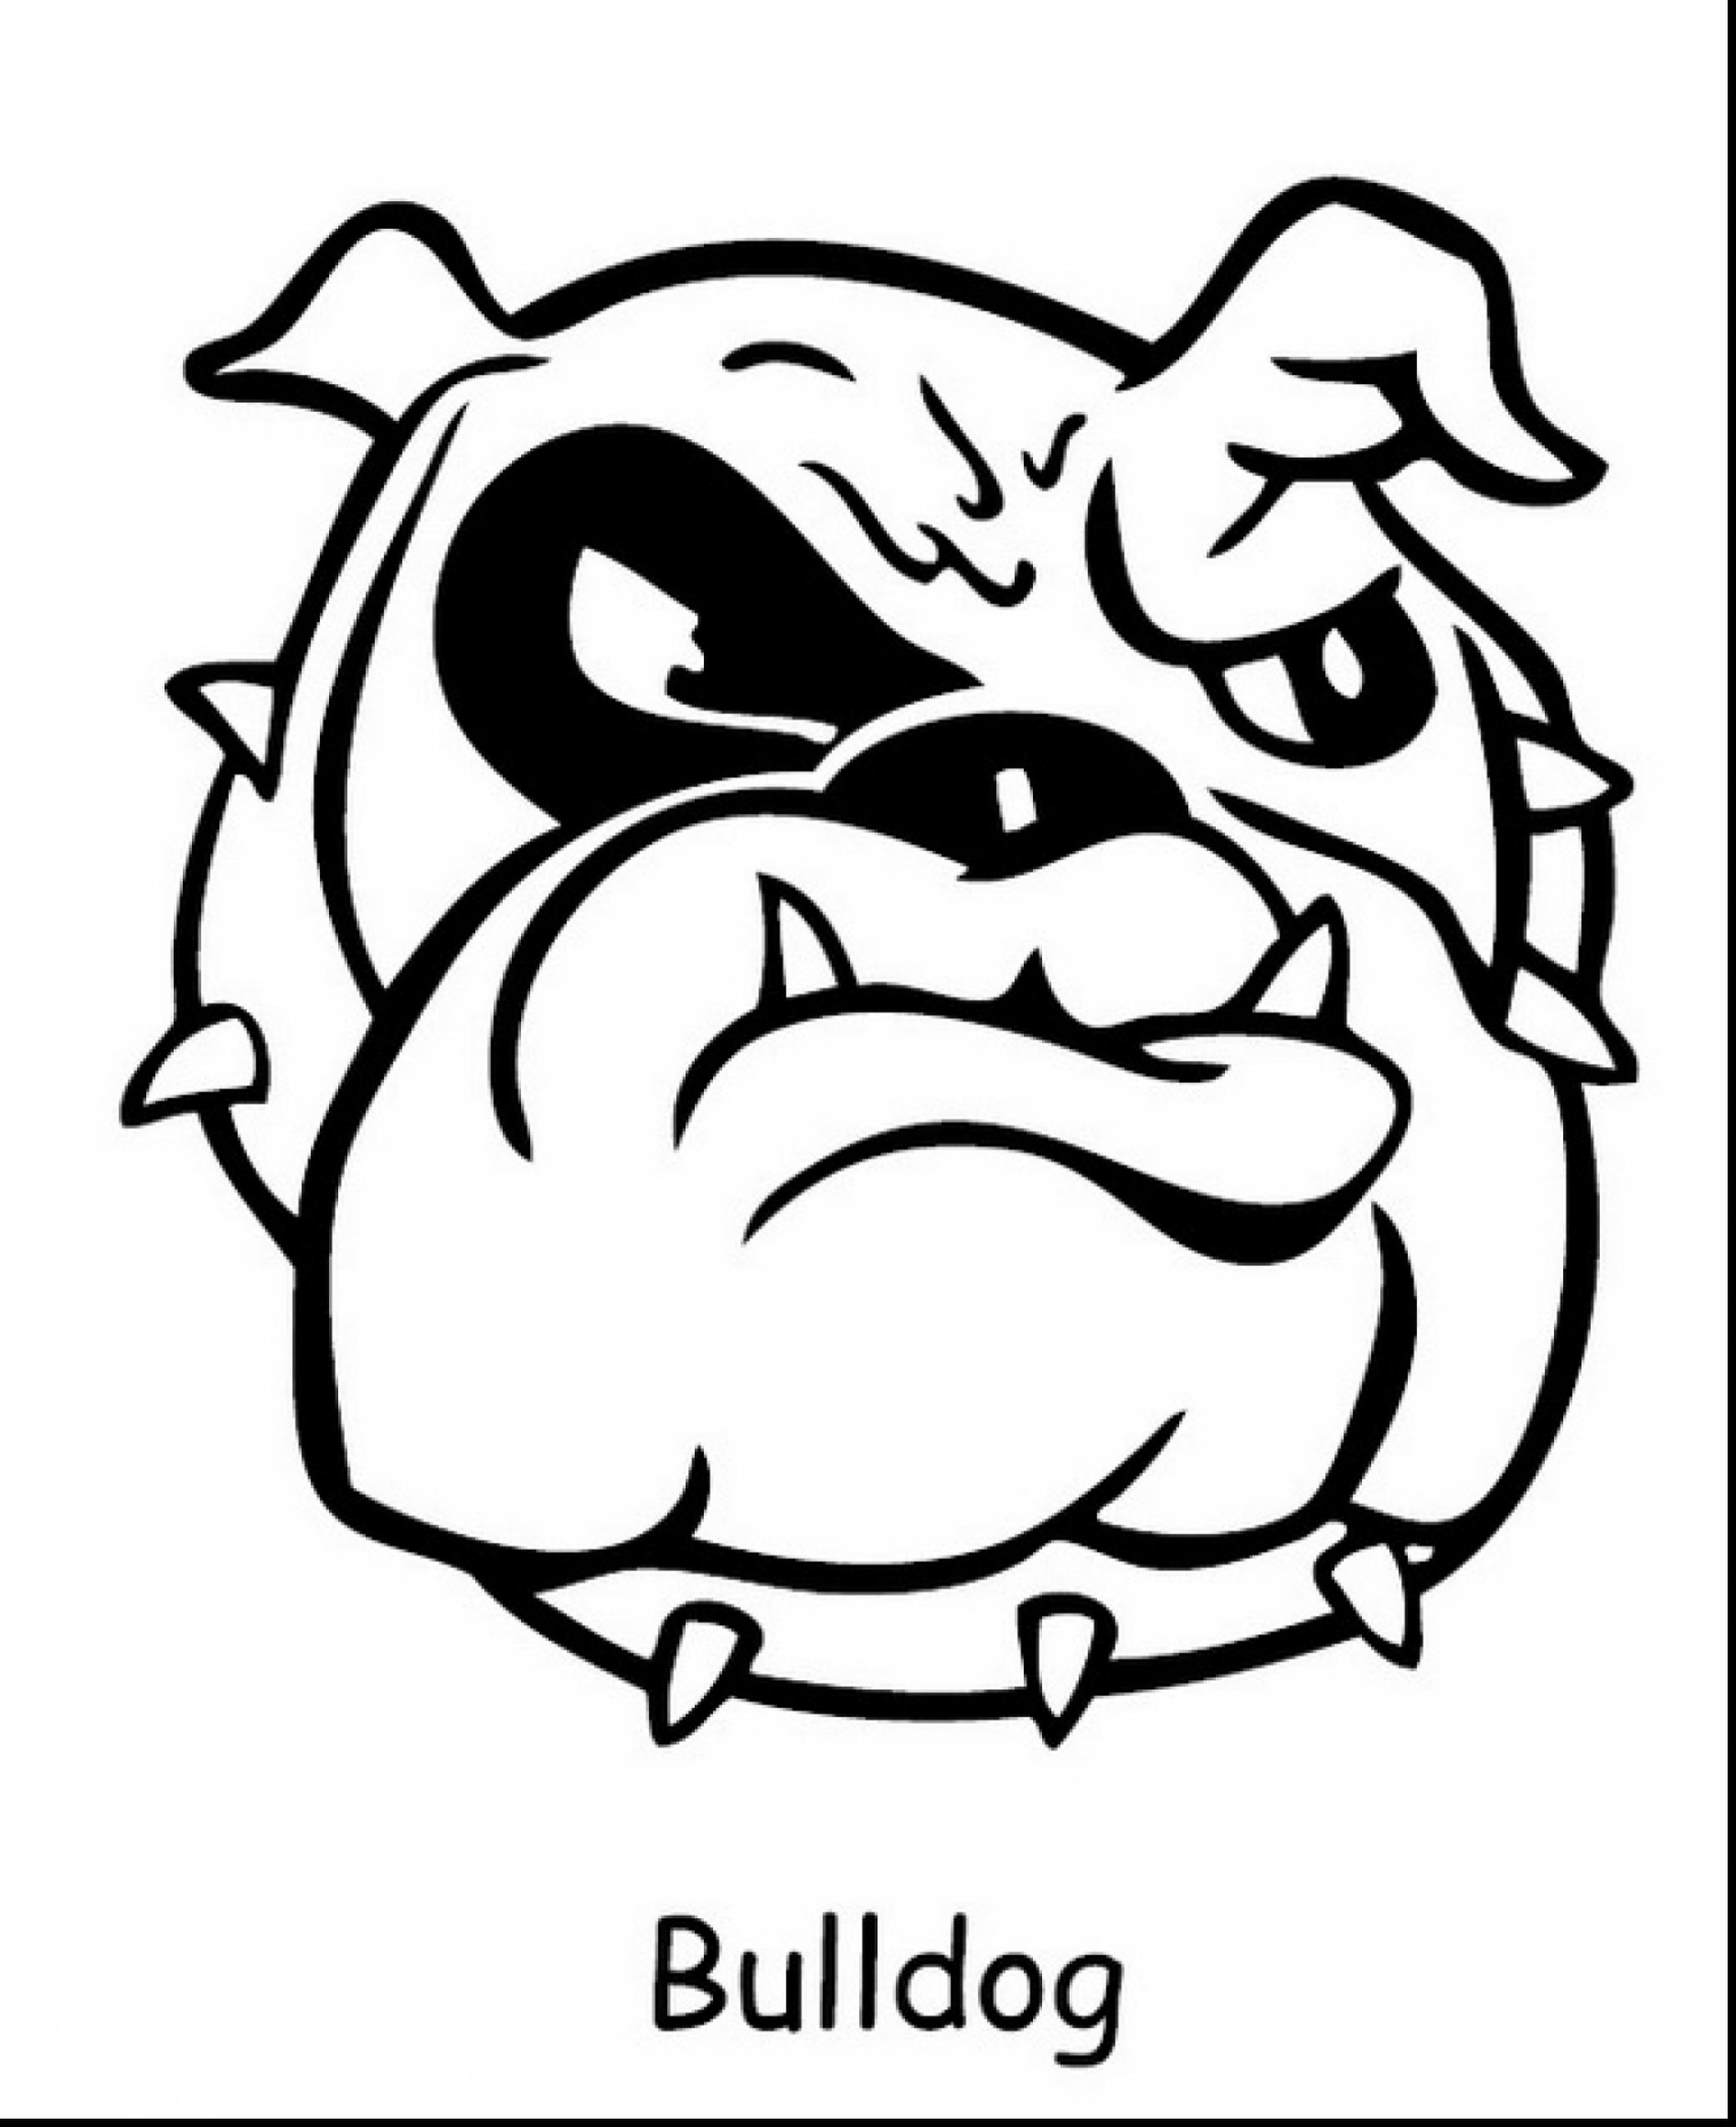 bulldogs coloring pages bulldog coloring pages getcoloringpagescom coloring pages bulldogs